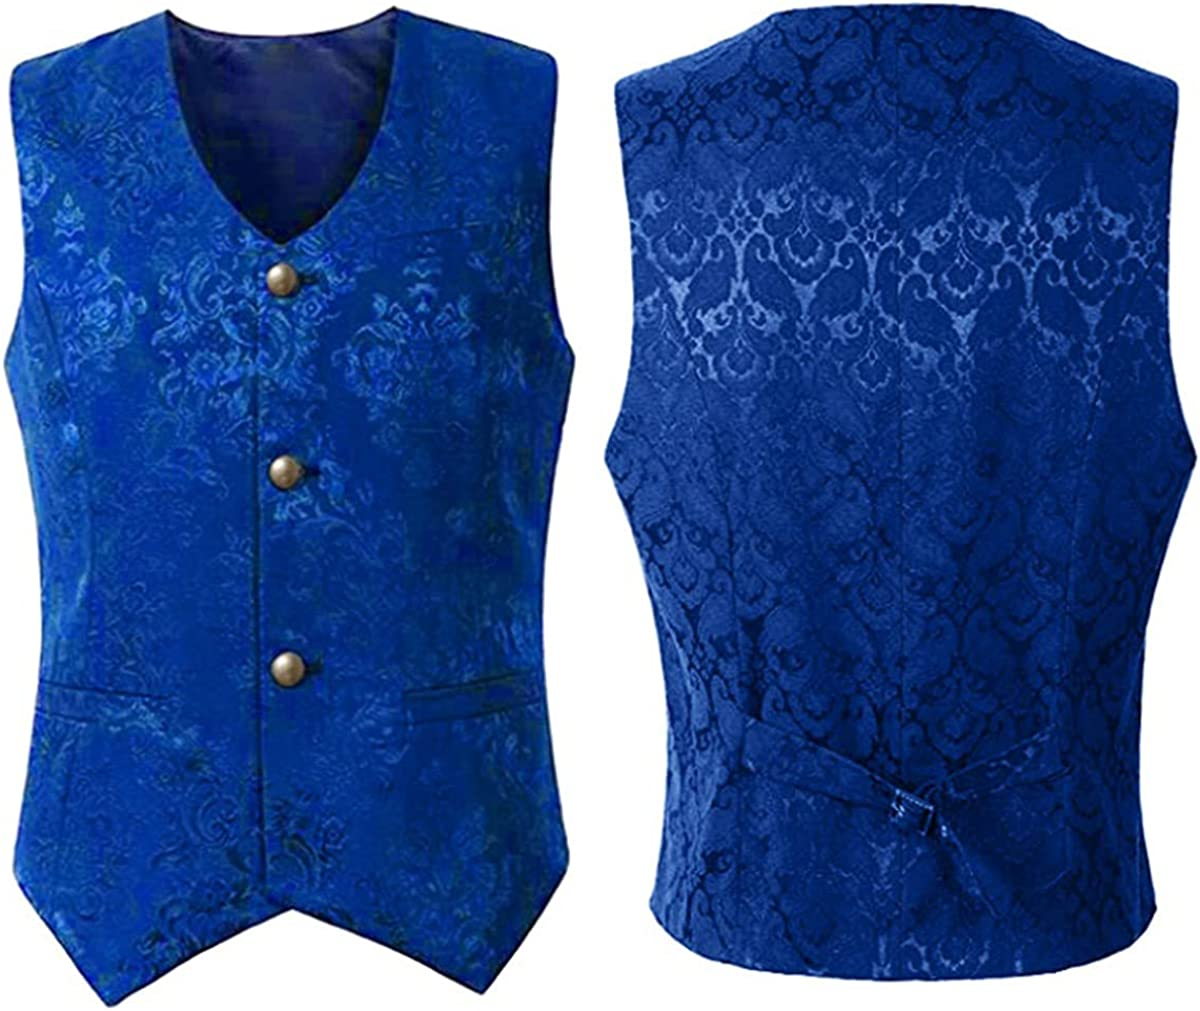 Max 65% OFF Men's Jacquard Single-Breasted Ranking TOP3 Vest Tuxedo Steampunk Gothic